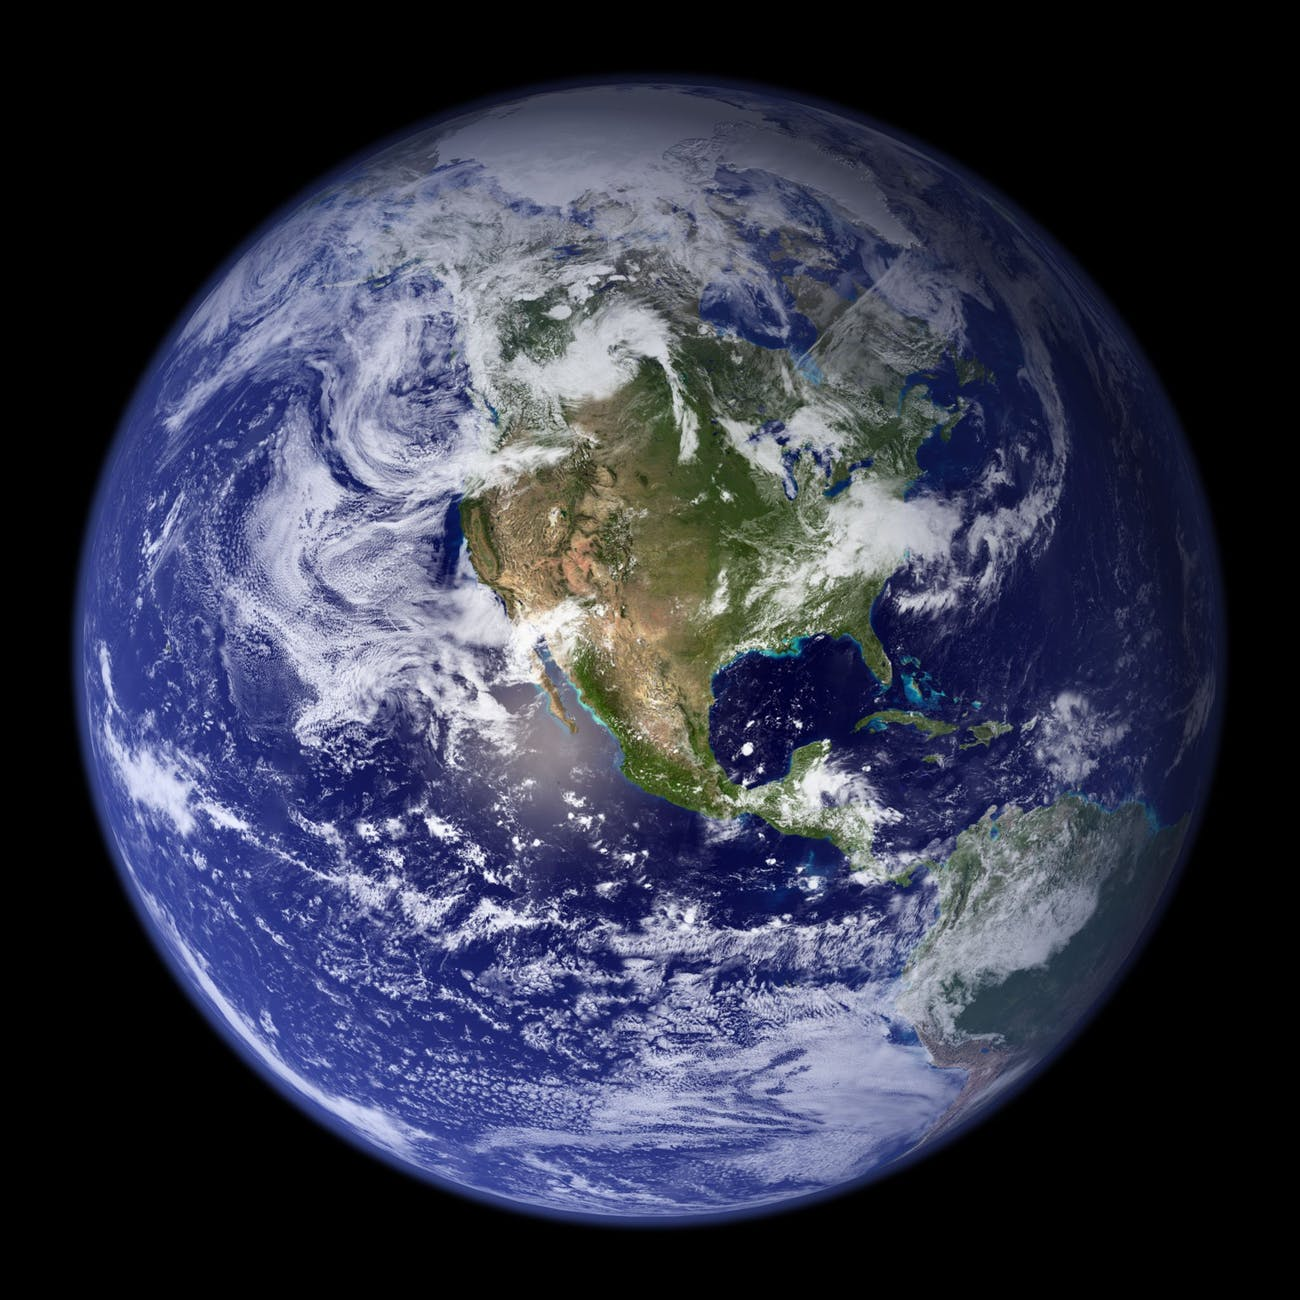 earth-blue-planet-globe-planet-87651.jpg